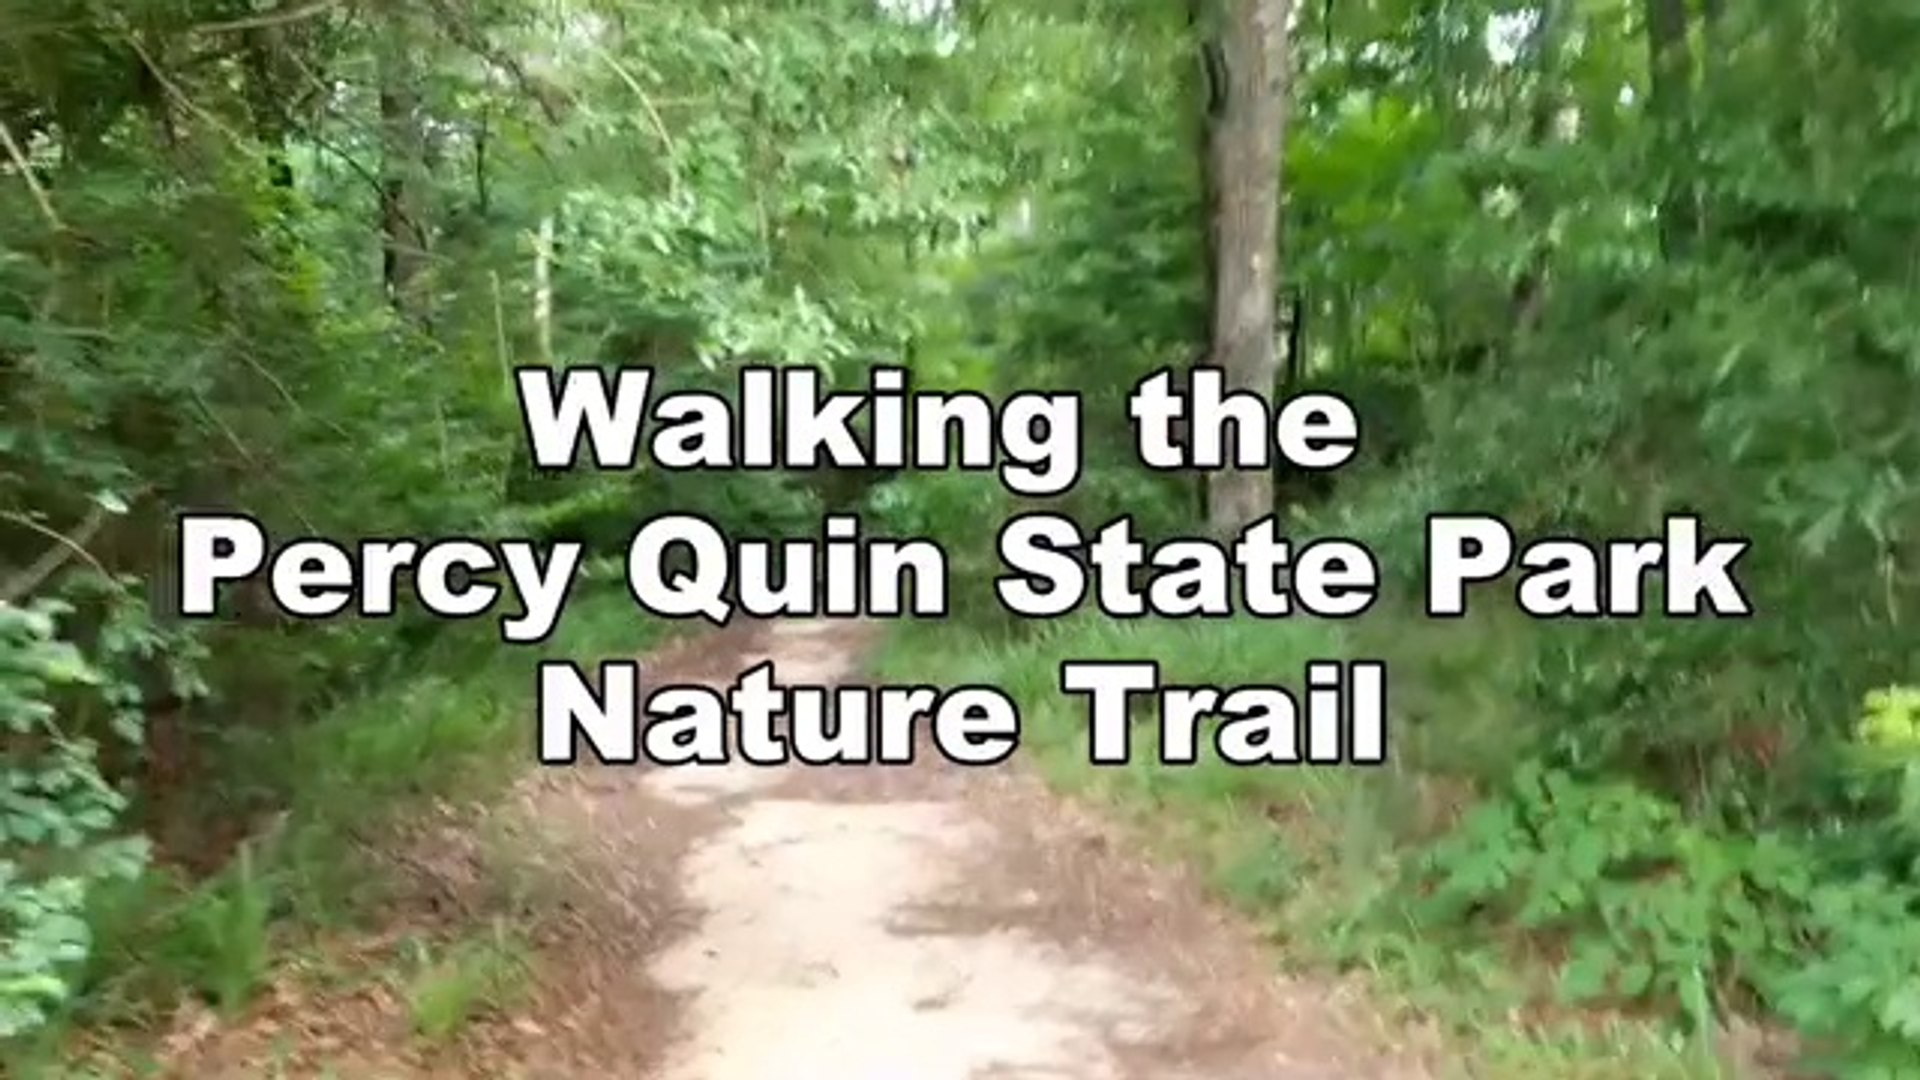 Walking The Nature Trail At Percy Quin State Park In Mccomb Mississippi